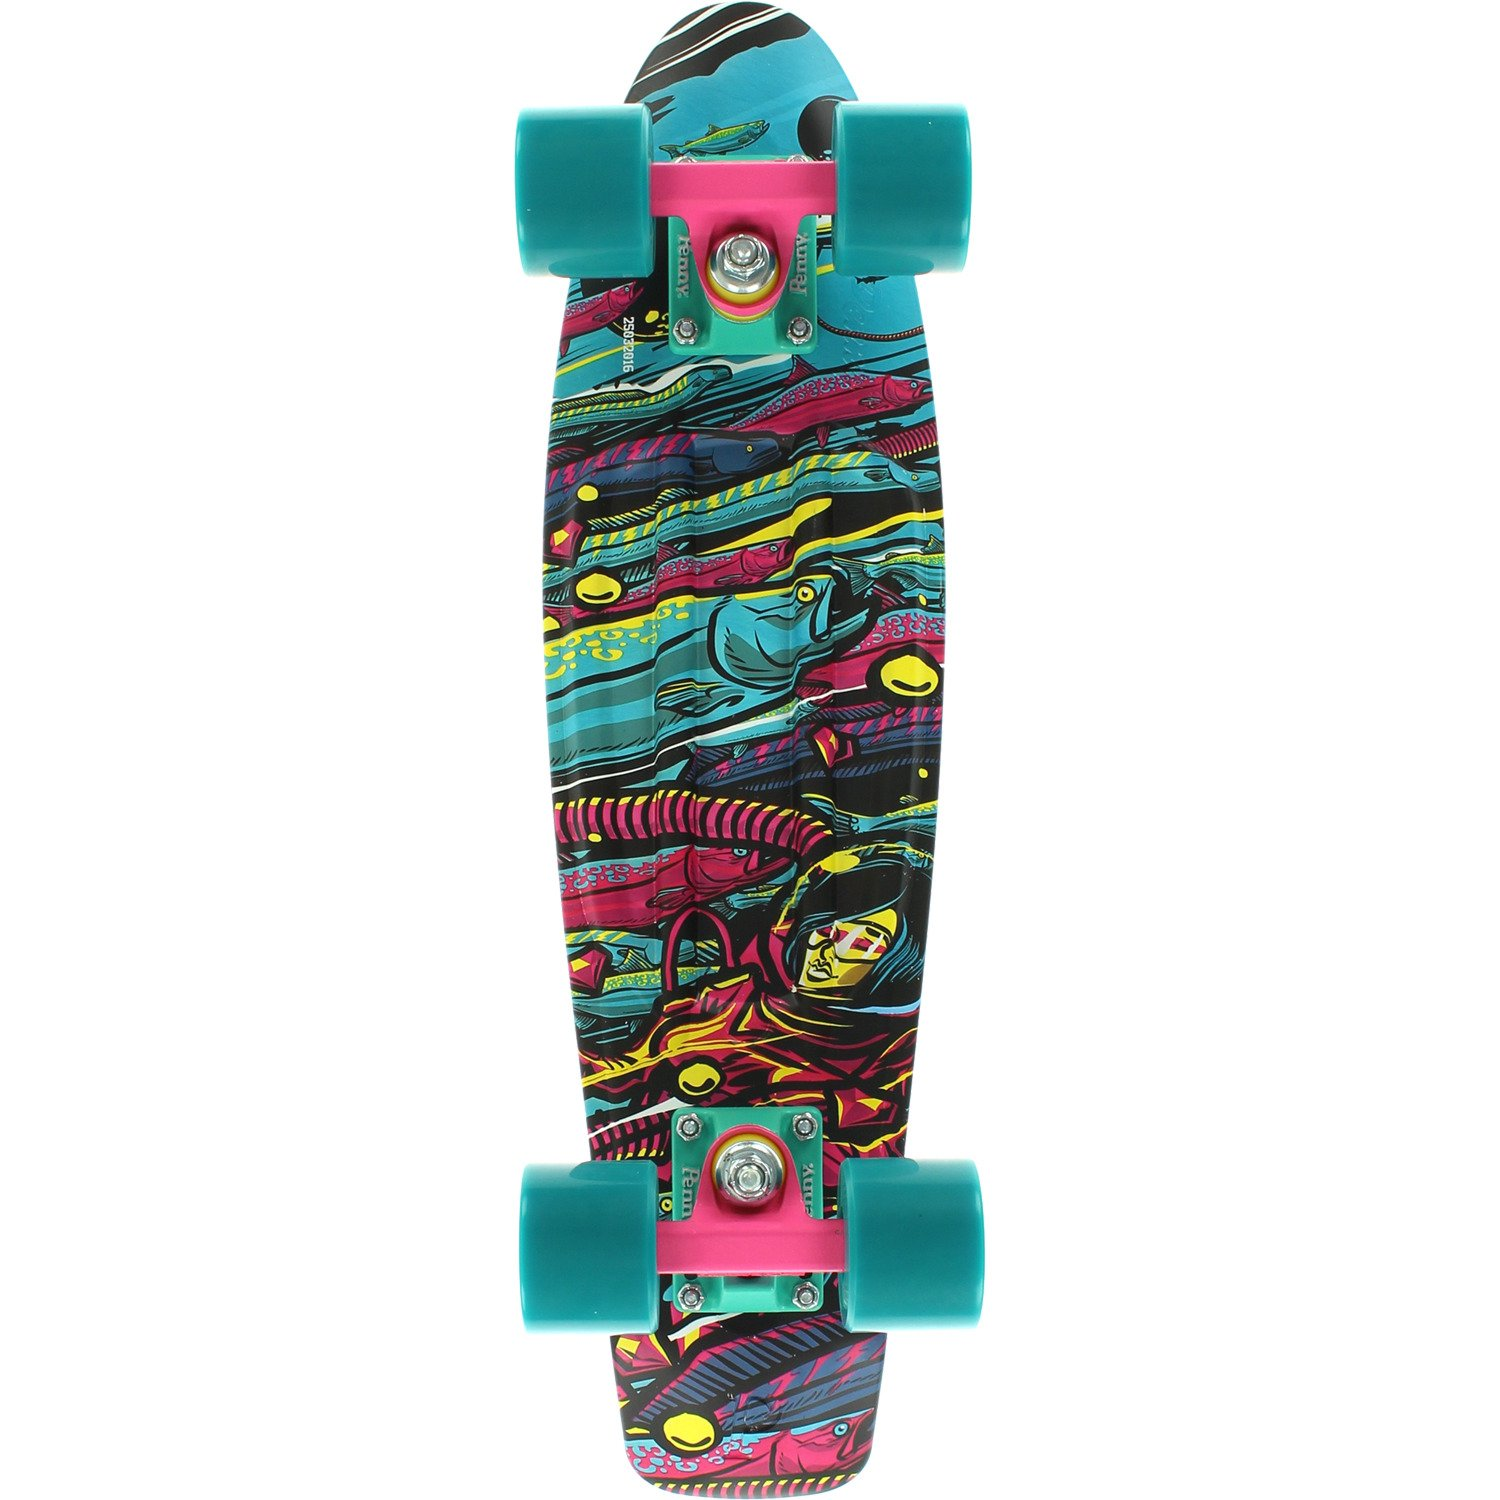 最適な価格 Penny Skateboards Sea Space by Skateboards 22 Complete 22 Skateboard - 6 x 22 by Penny Skateboards B01IHD64ZG, 売り切れ必至!:9294eedf --- a0267596.xsph.ru